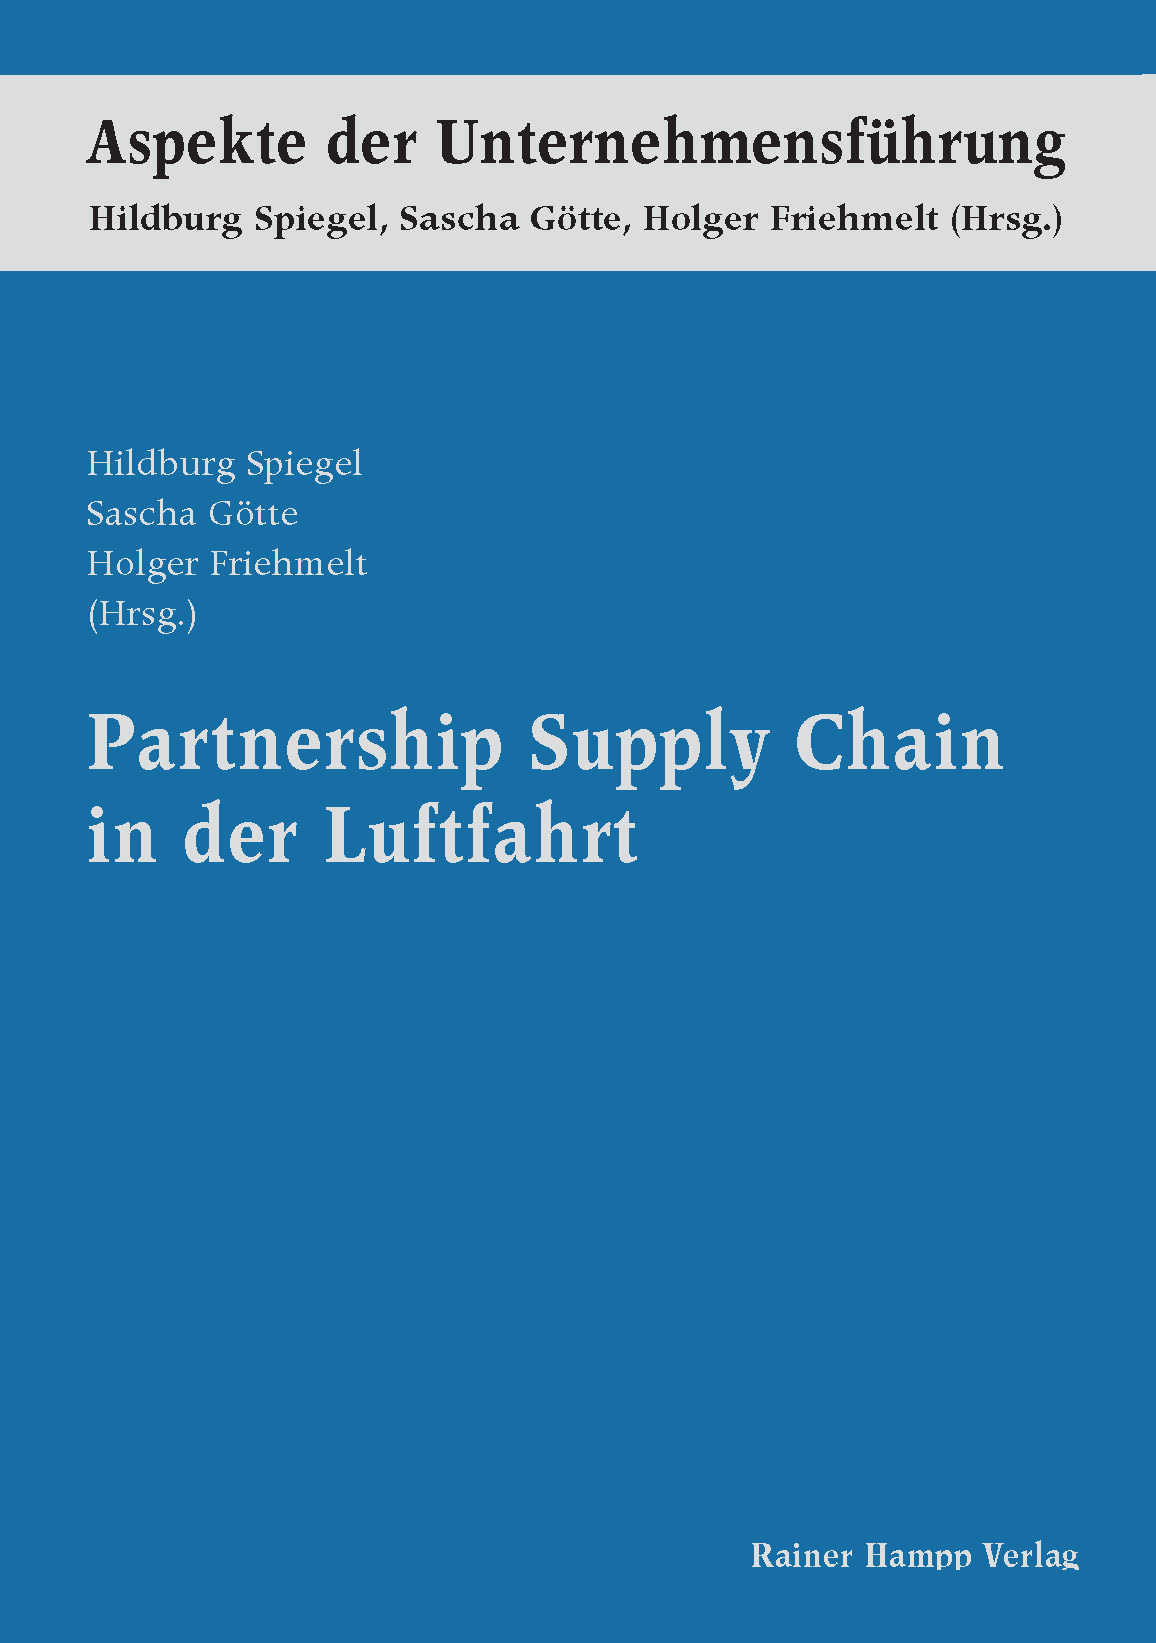 Partnership Supply Chain in der Luftfahrt